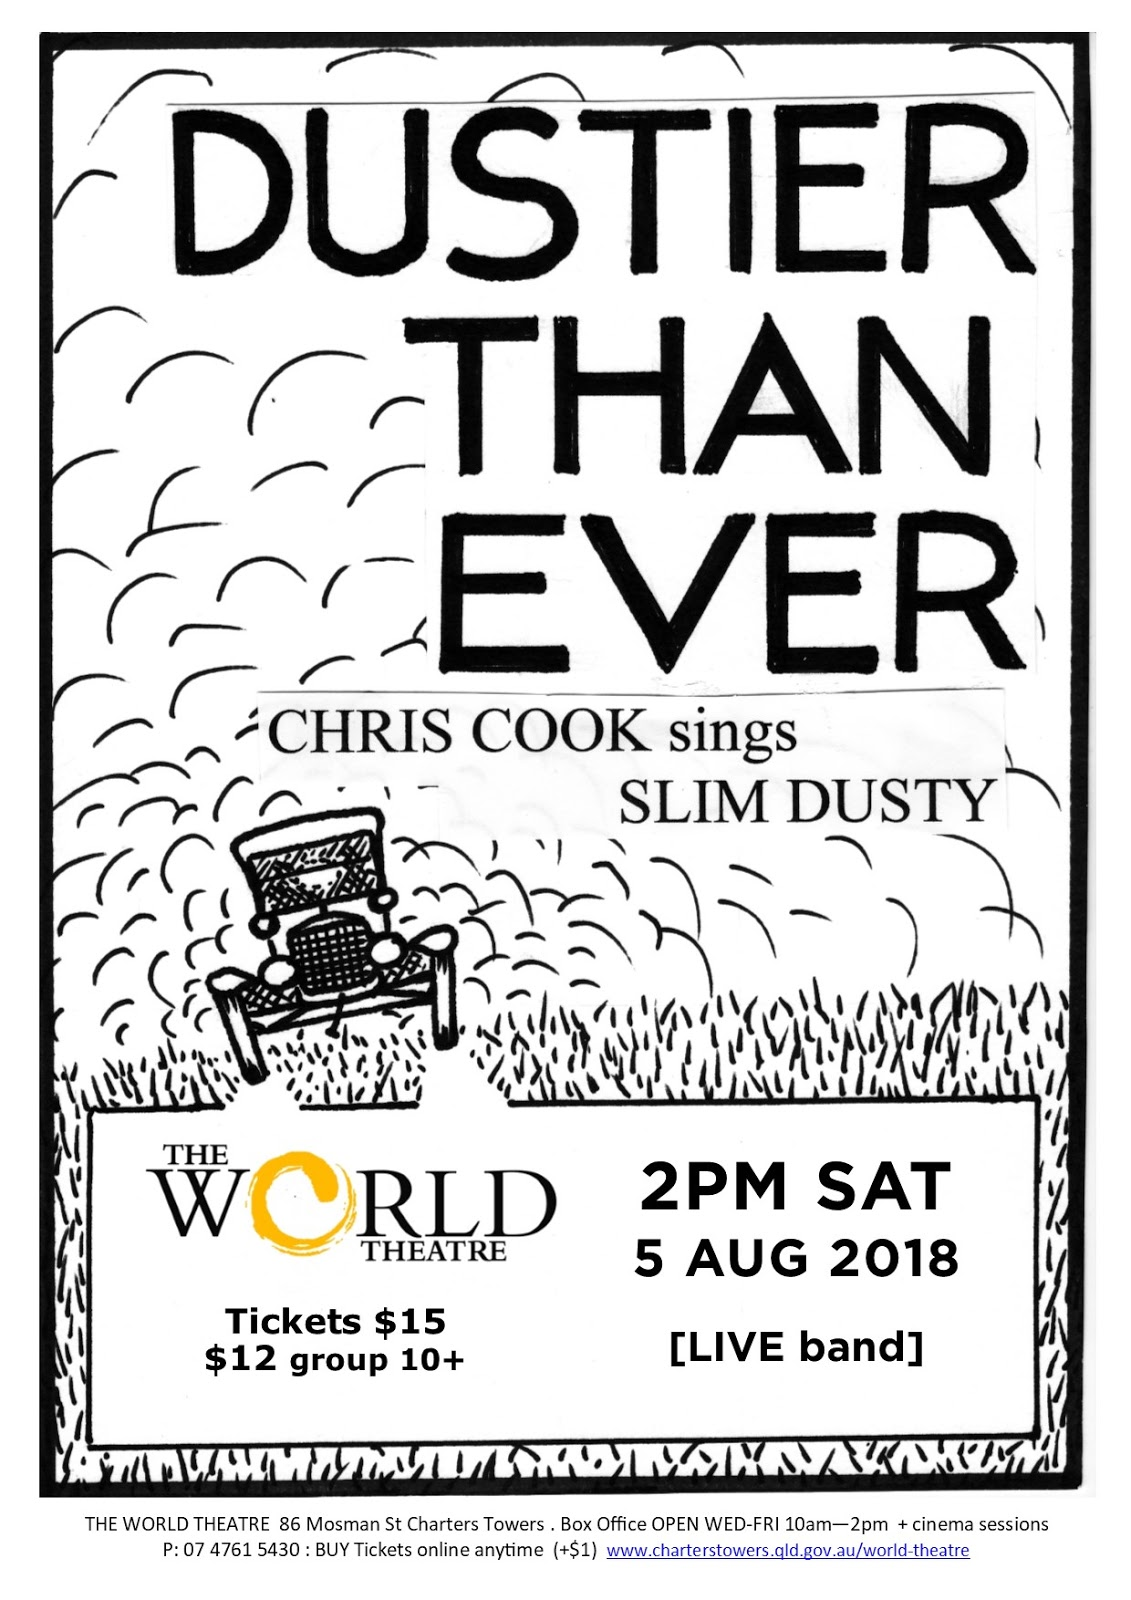 World Theatre Charters Towers Cinema Schedules Special Events Posters